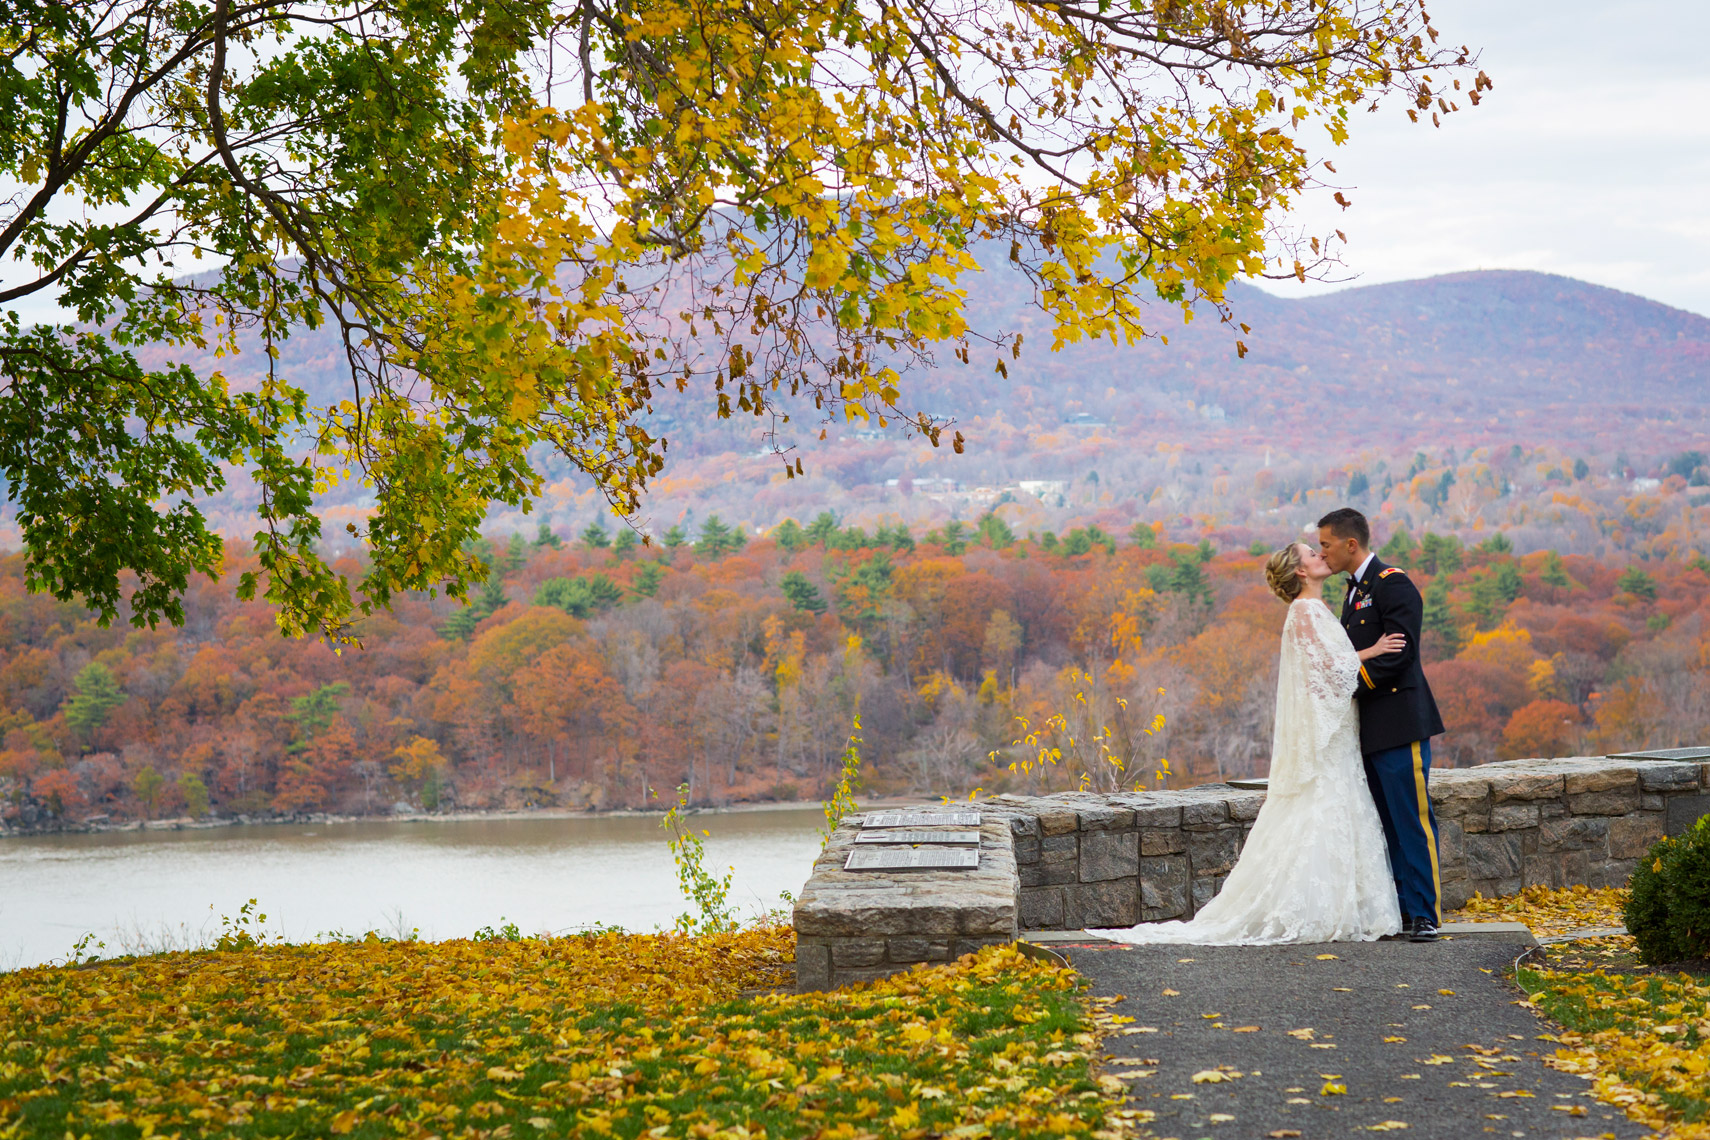 West-Point-Military-Academy-wedding-photographer-fall-colors-wedding-couple-portrait